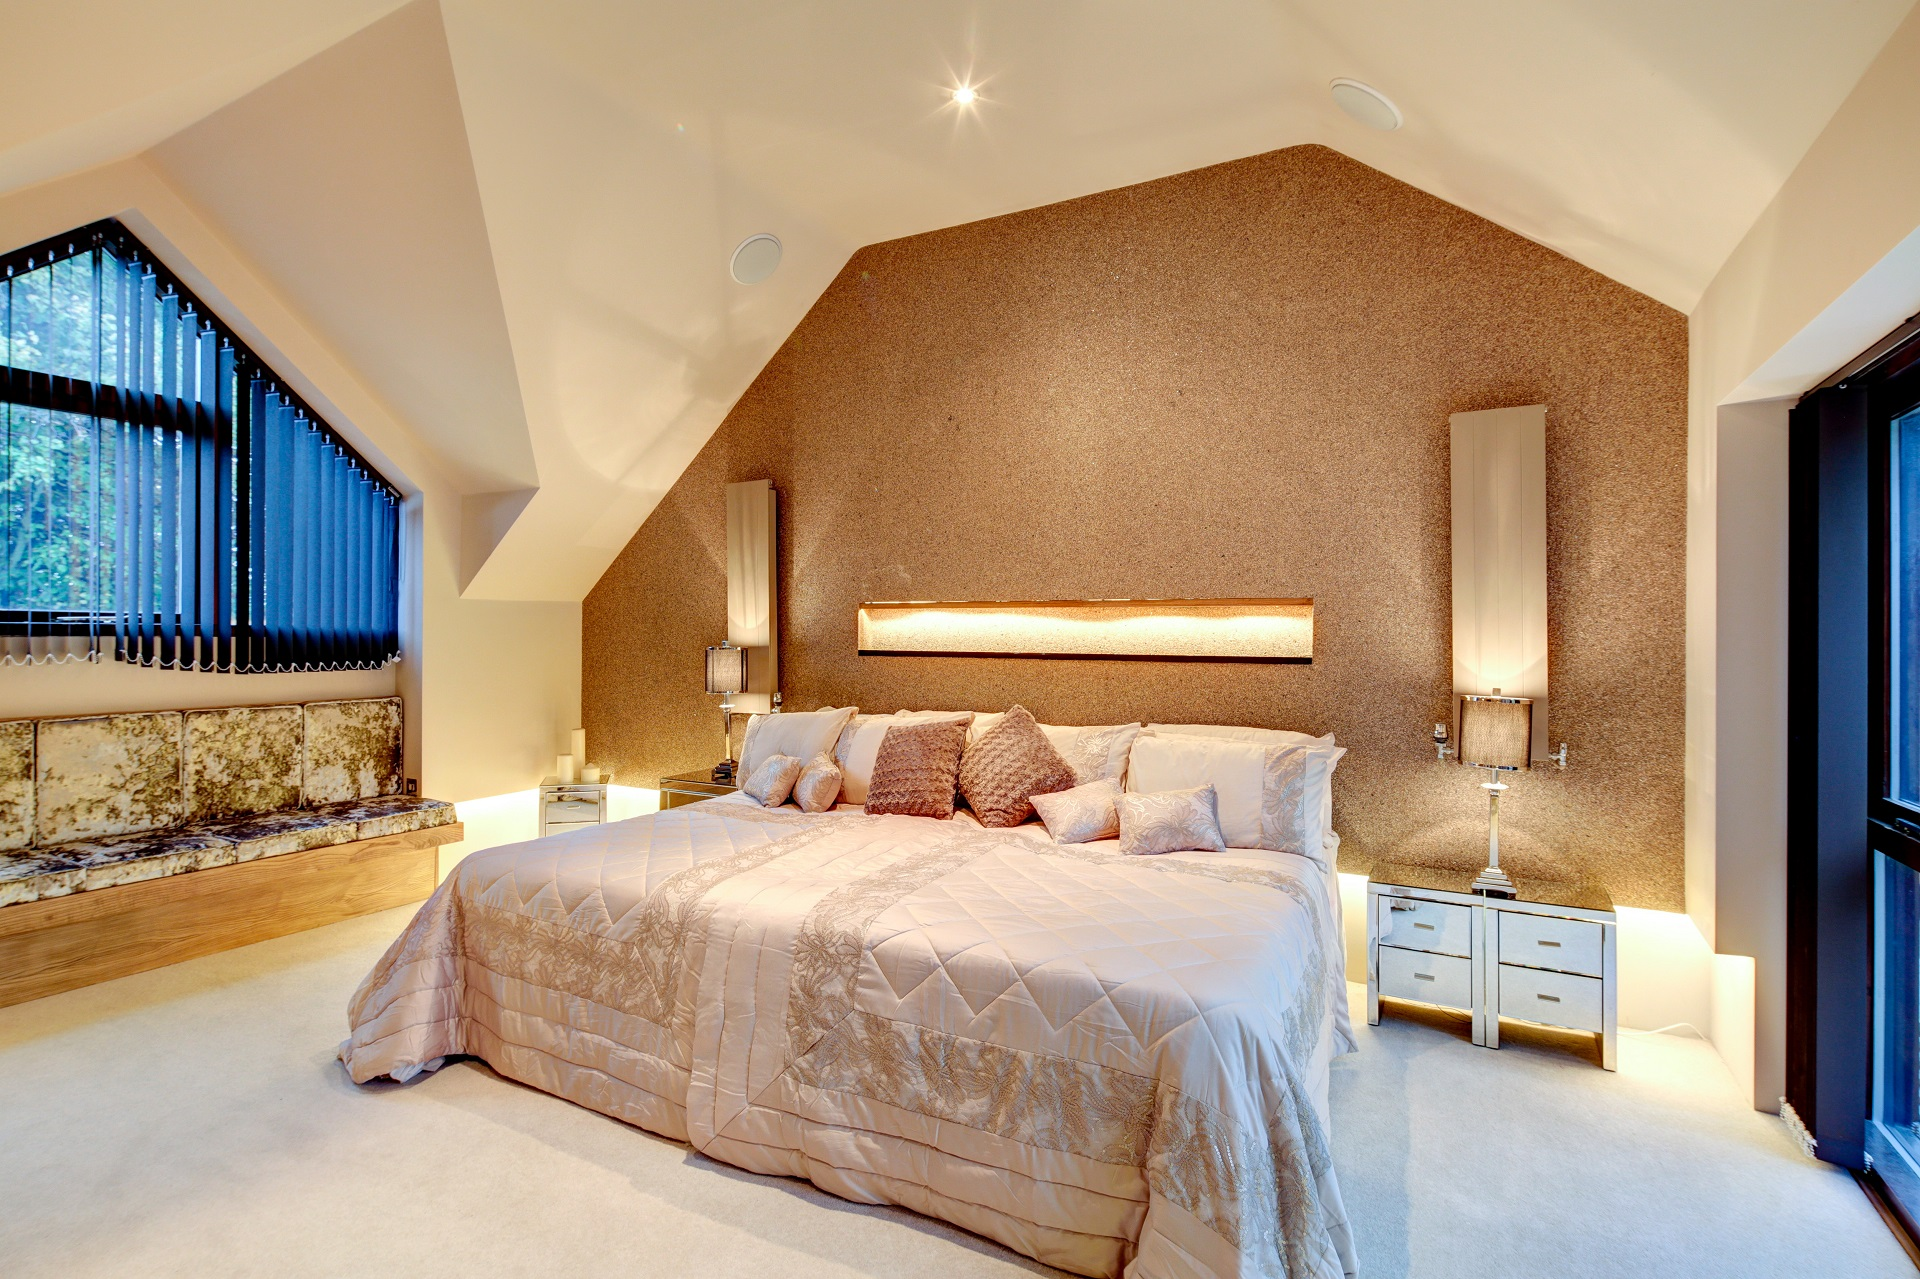 Cedar heights, nottingham, luxury bedroom, gold lead wallpaper, oversized bed, pitched ceiling, luxury home